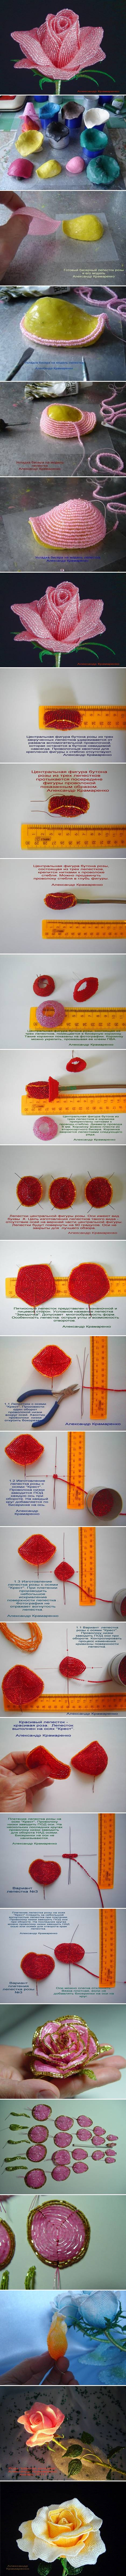 How to Make French Beaded Rose step by step DIY tutorial instructions